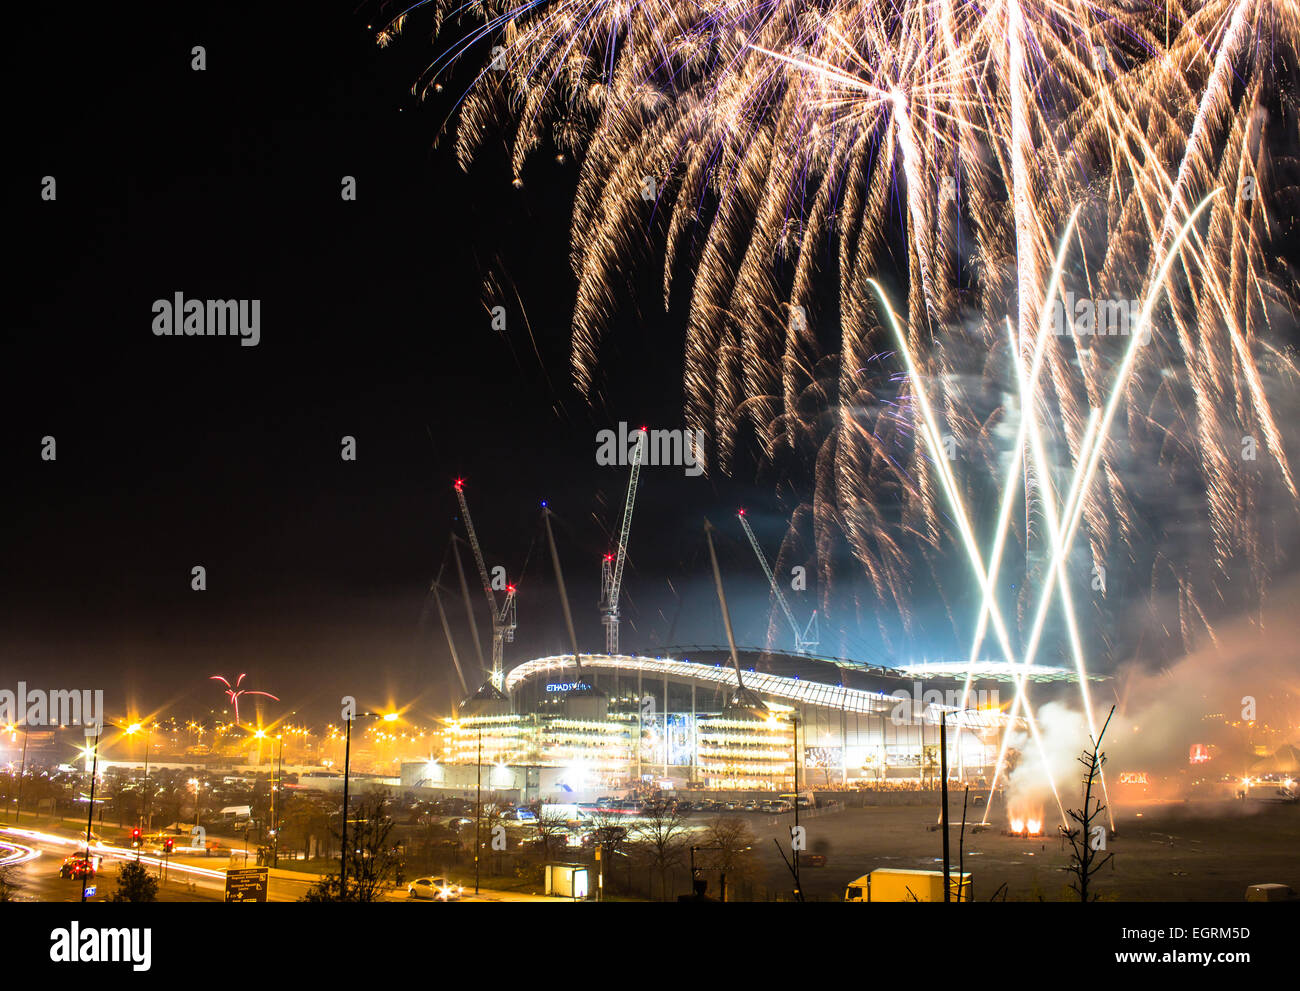 Etihad Stadium and fireworks before Bonfire Night Champions League match, Manchester City v. CSKA Moscow - Stock Image